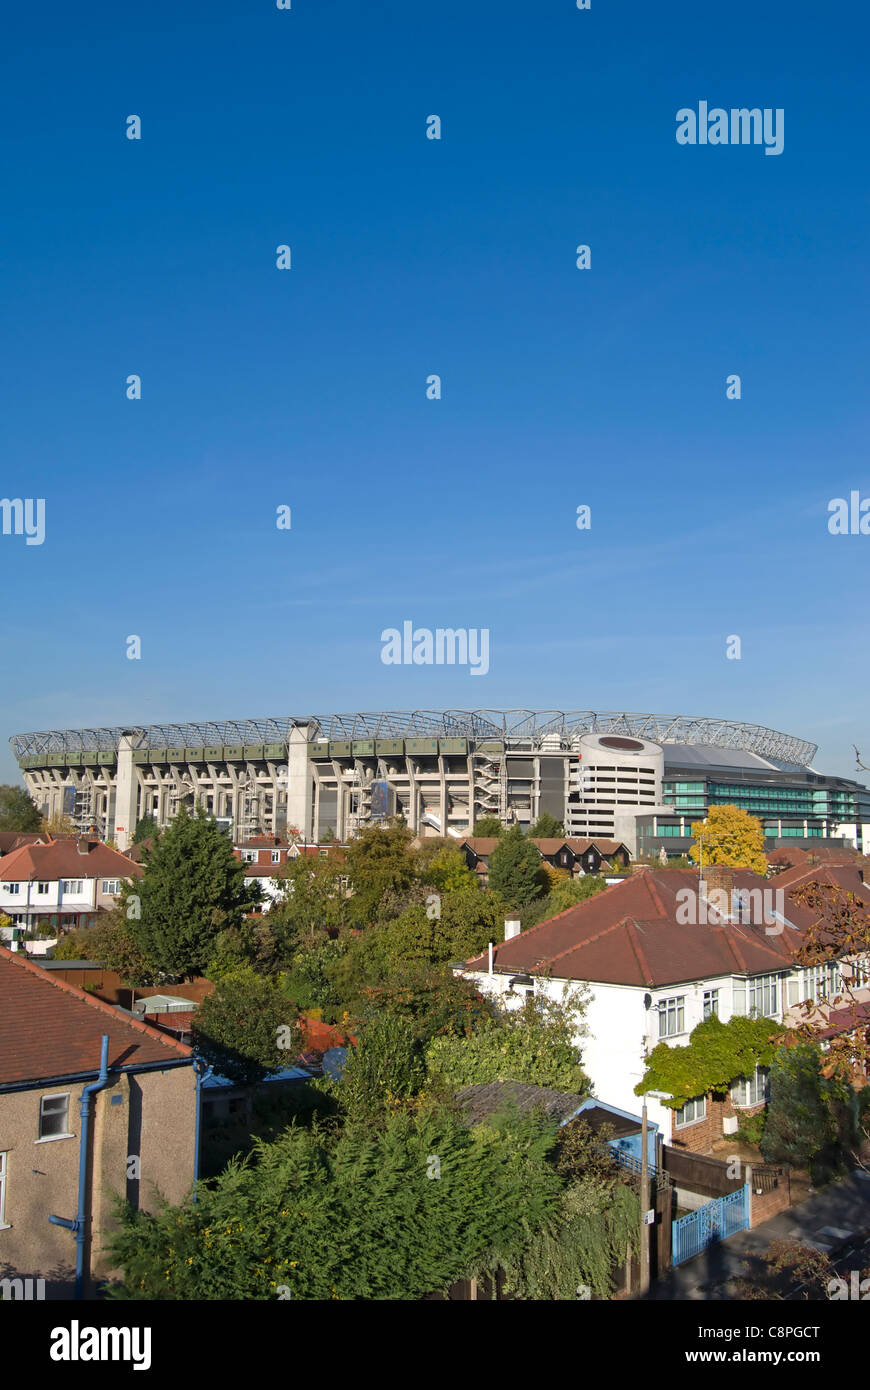 twickenham stadium, or rugby ground, with local houses in foreground, twickenham, middlesex, england - Stock Image